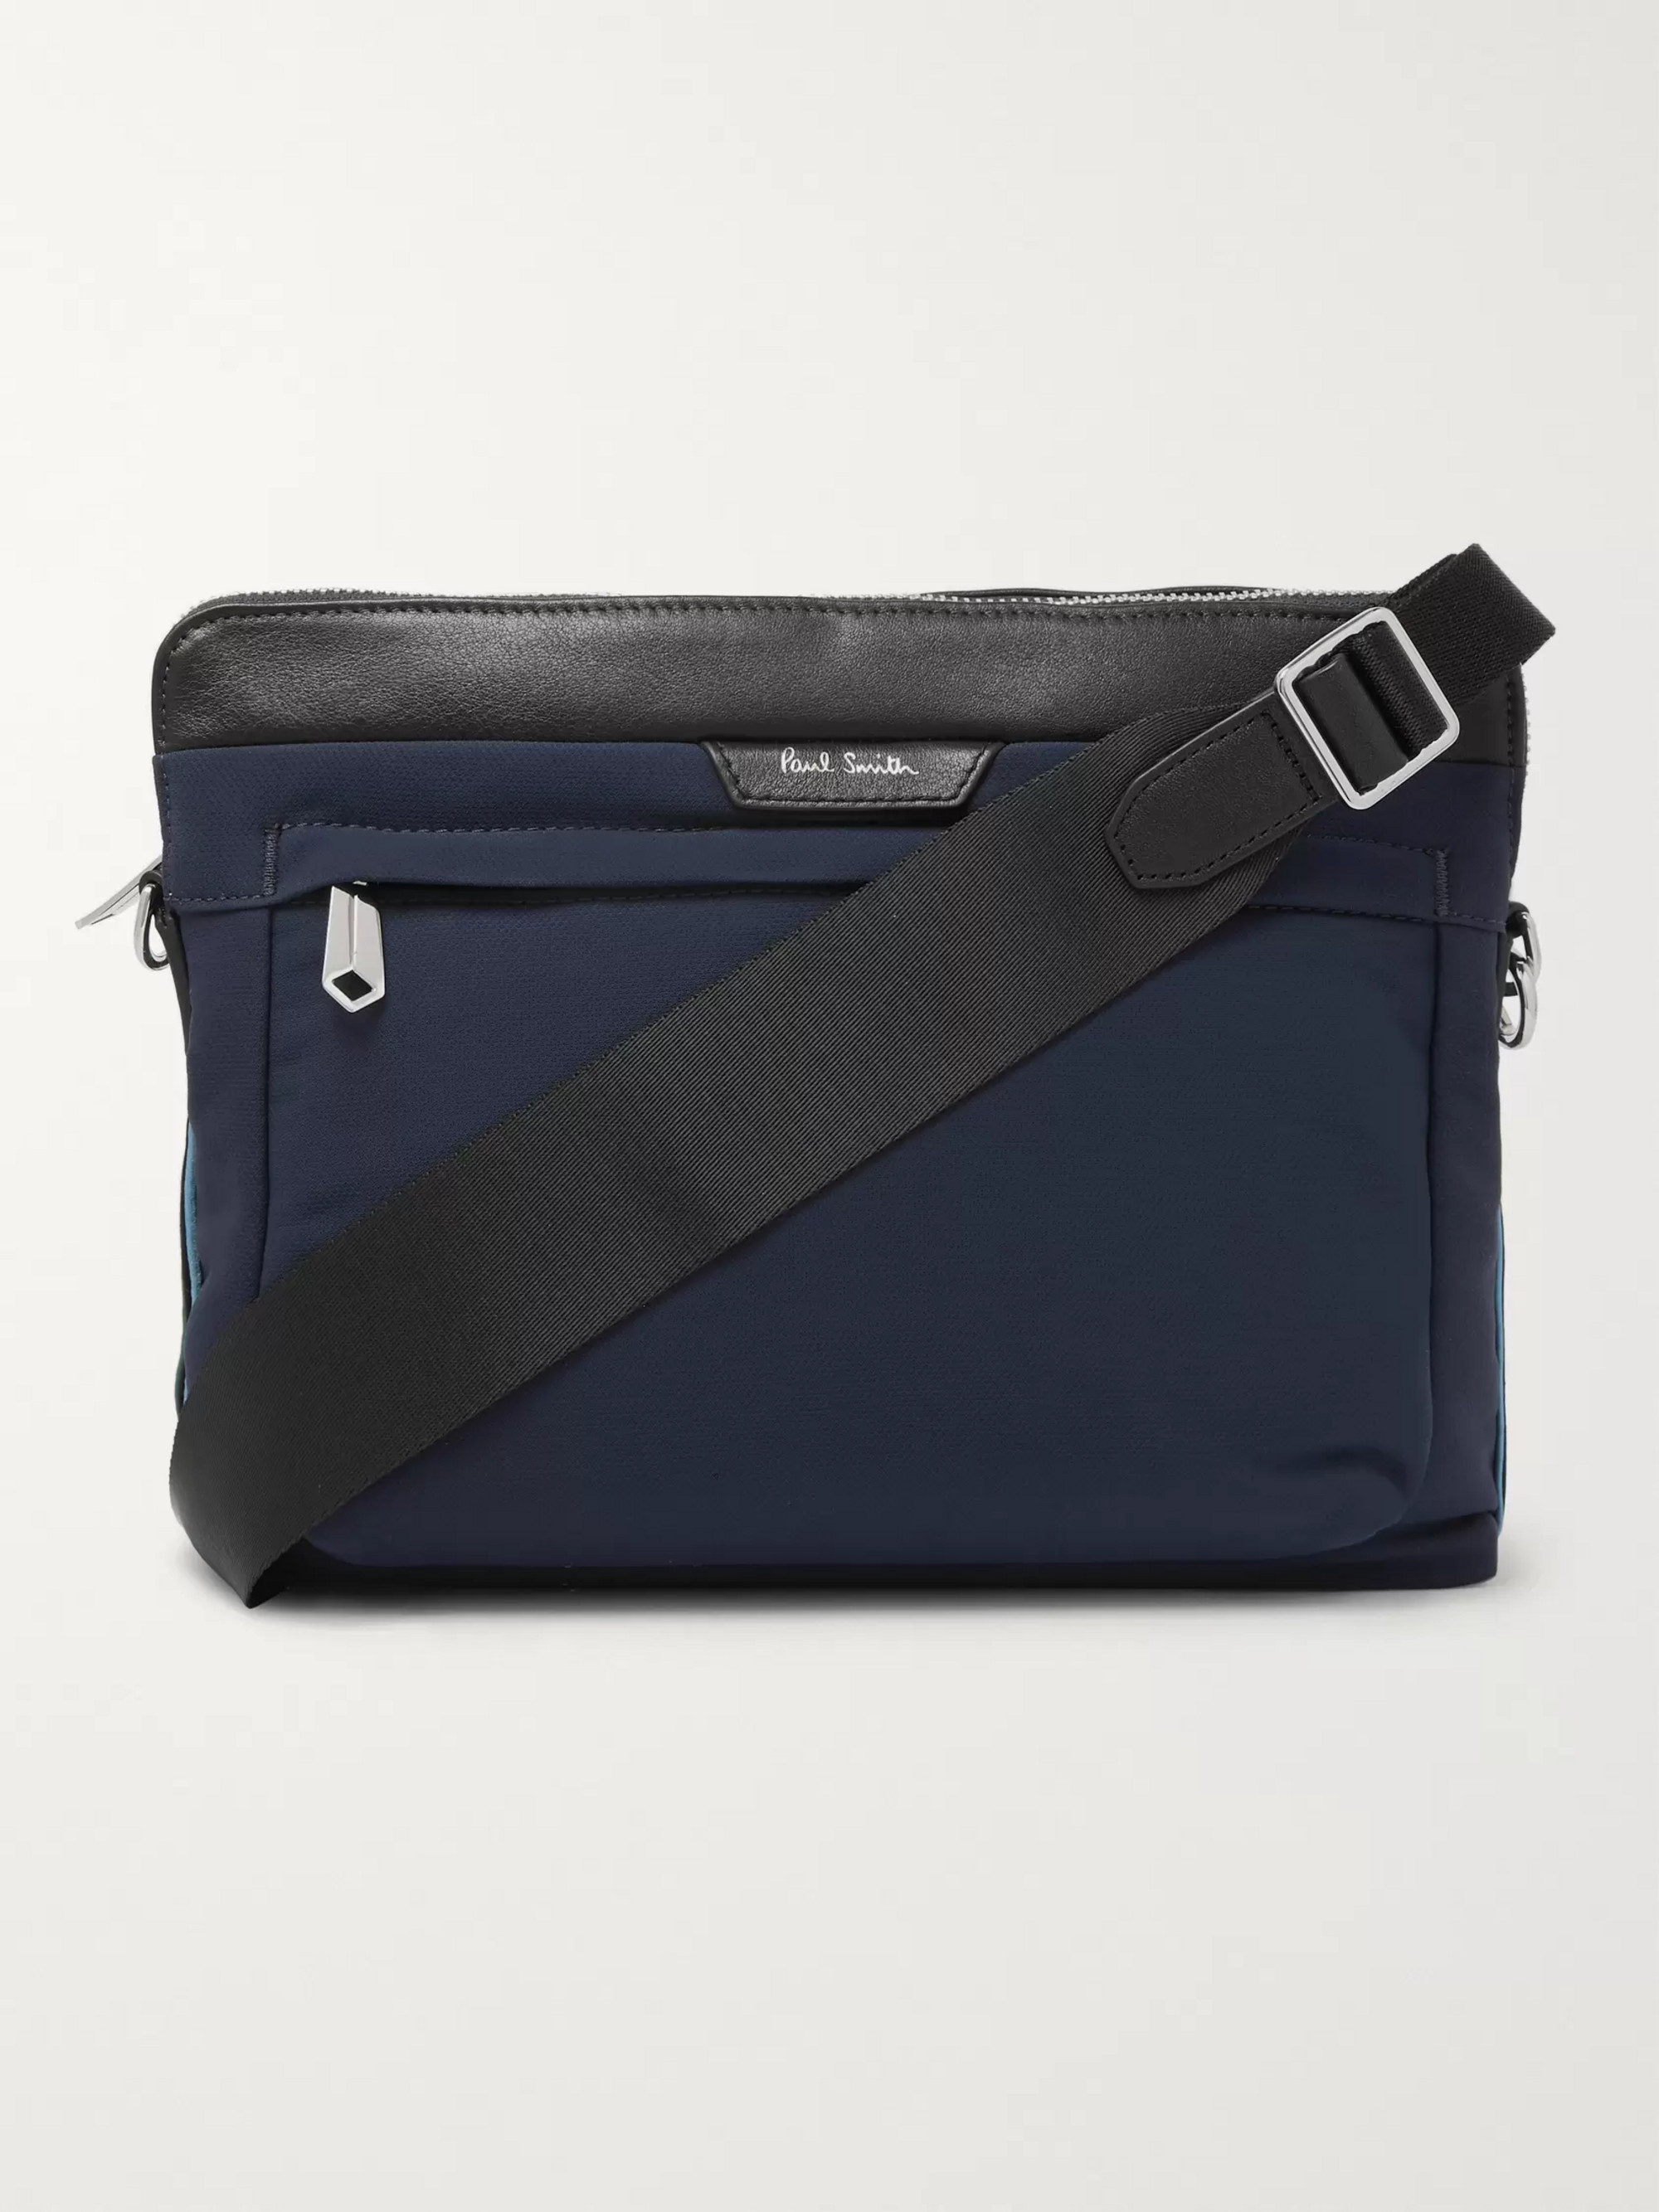 Paul Smith Leather-Trimmed Canvas Messenger Bag